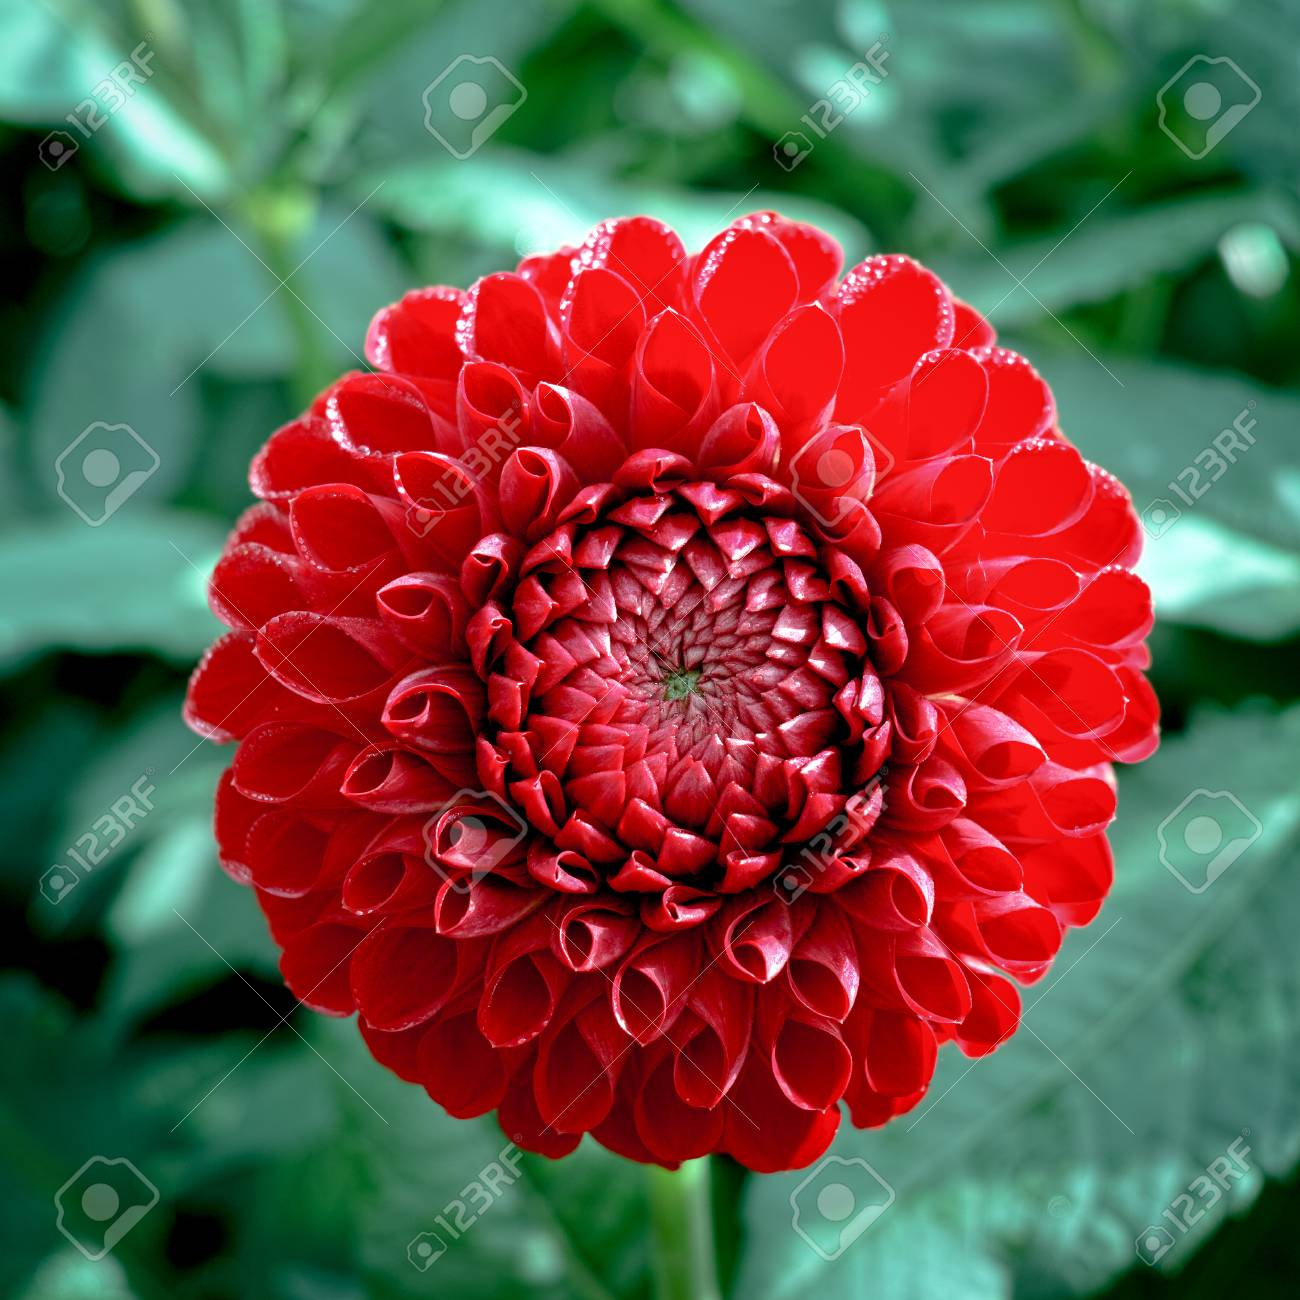 Red Dahlia Flower On The Plant Beautiful Bouquet Or Decoration